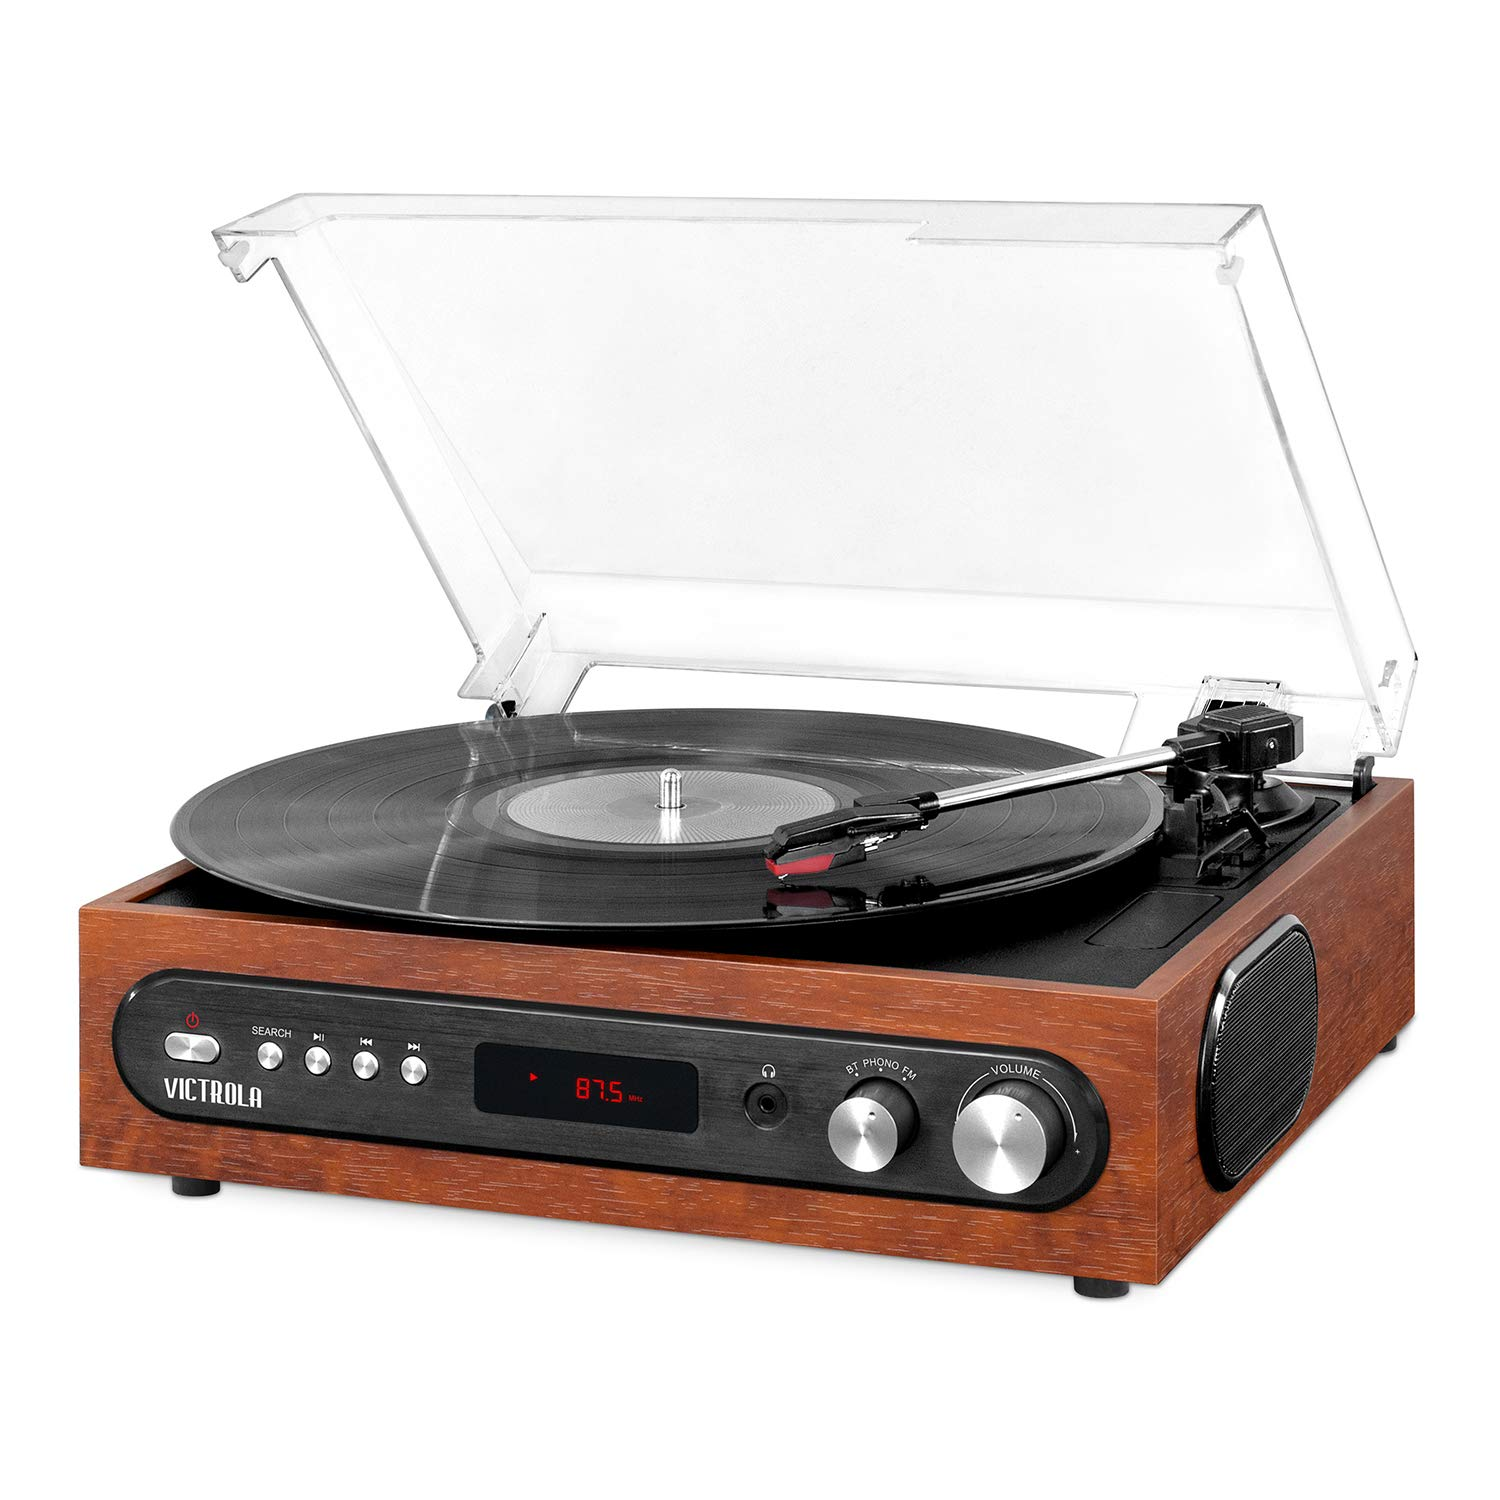 Victrola All-in-1 Bluetooth Record Player with Built in Speakers and 3-Speed Turntable Mahogany (VTA-65-MAH) by Victrola